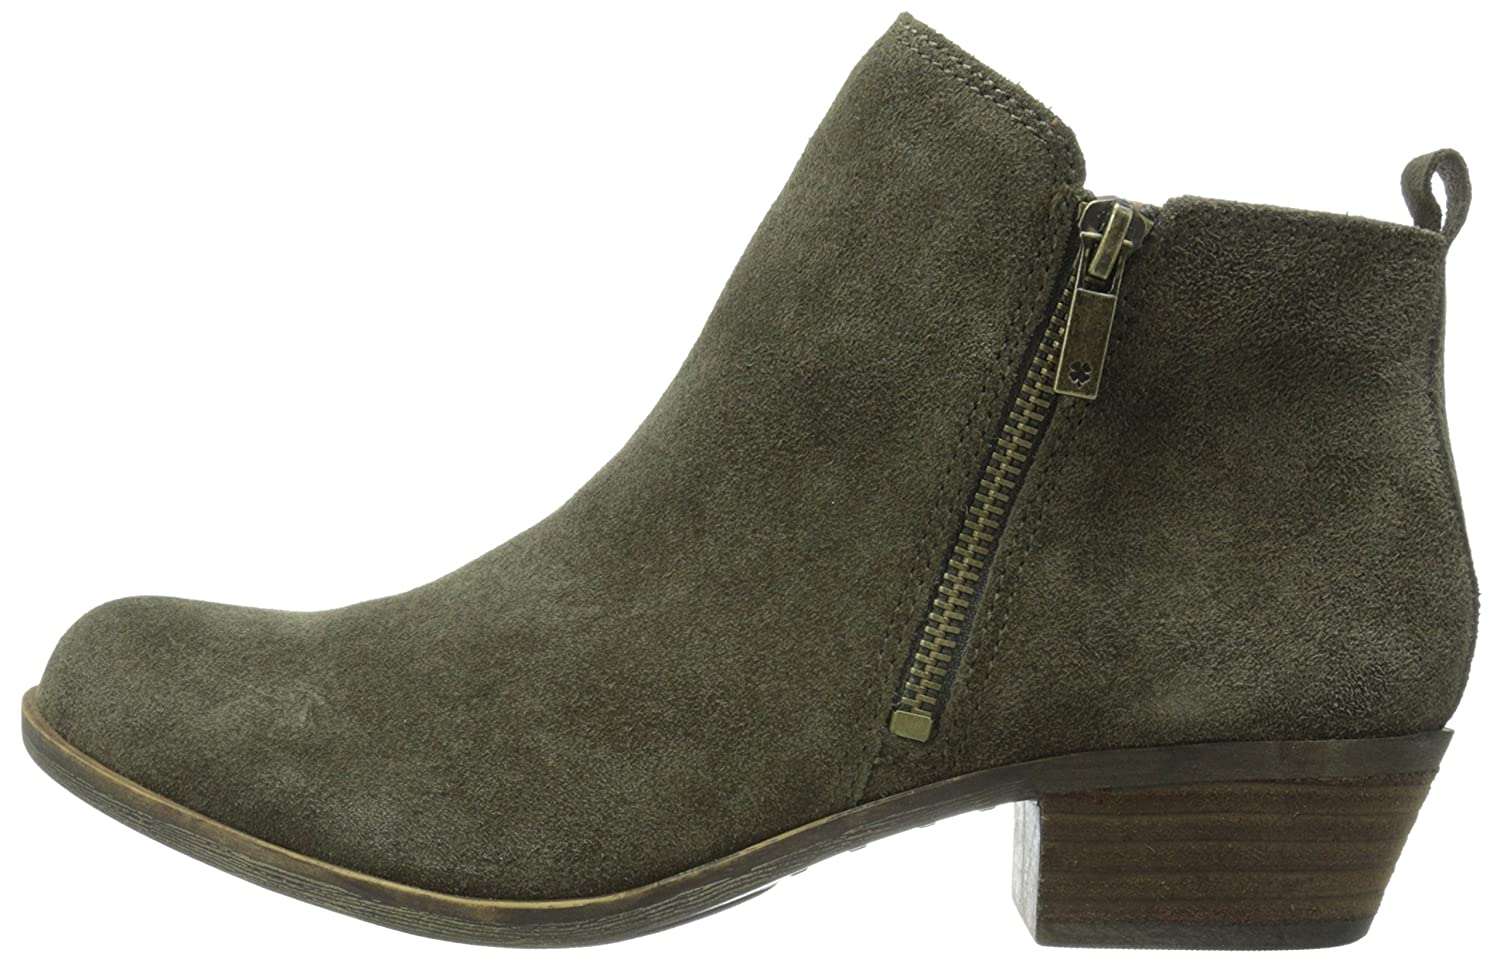 Lucky Brand Women's Basel Boot Olive B00UPG5RE8 10 B(M) US|Italian Olive Boot 887441